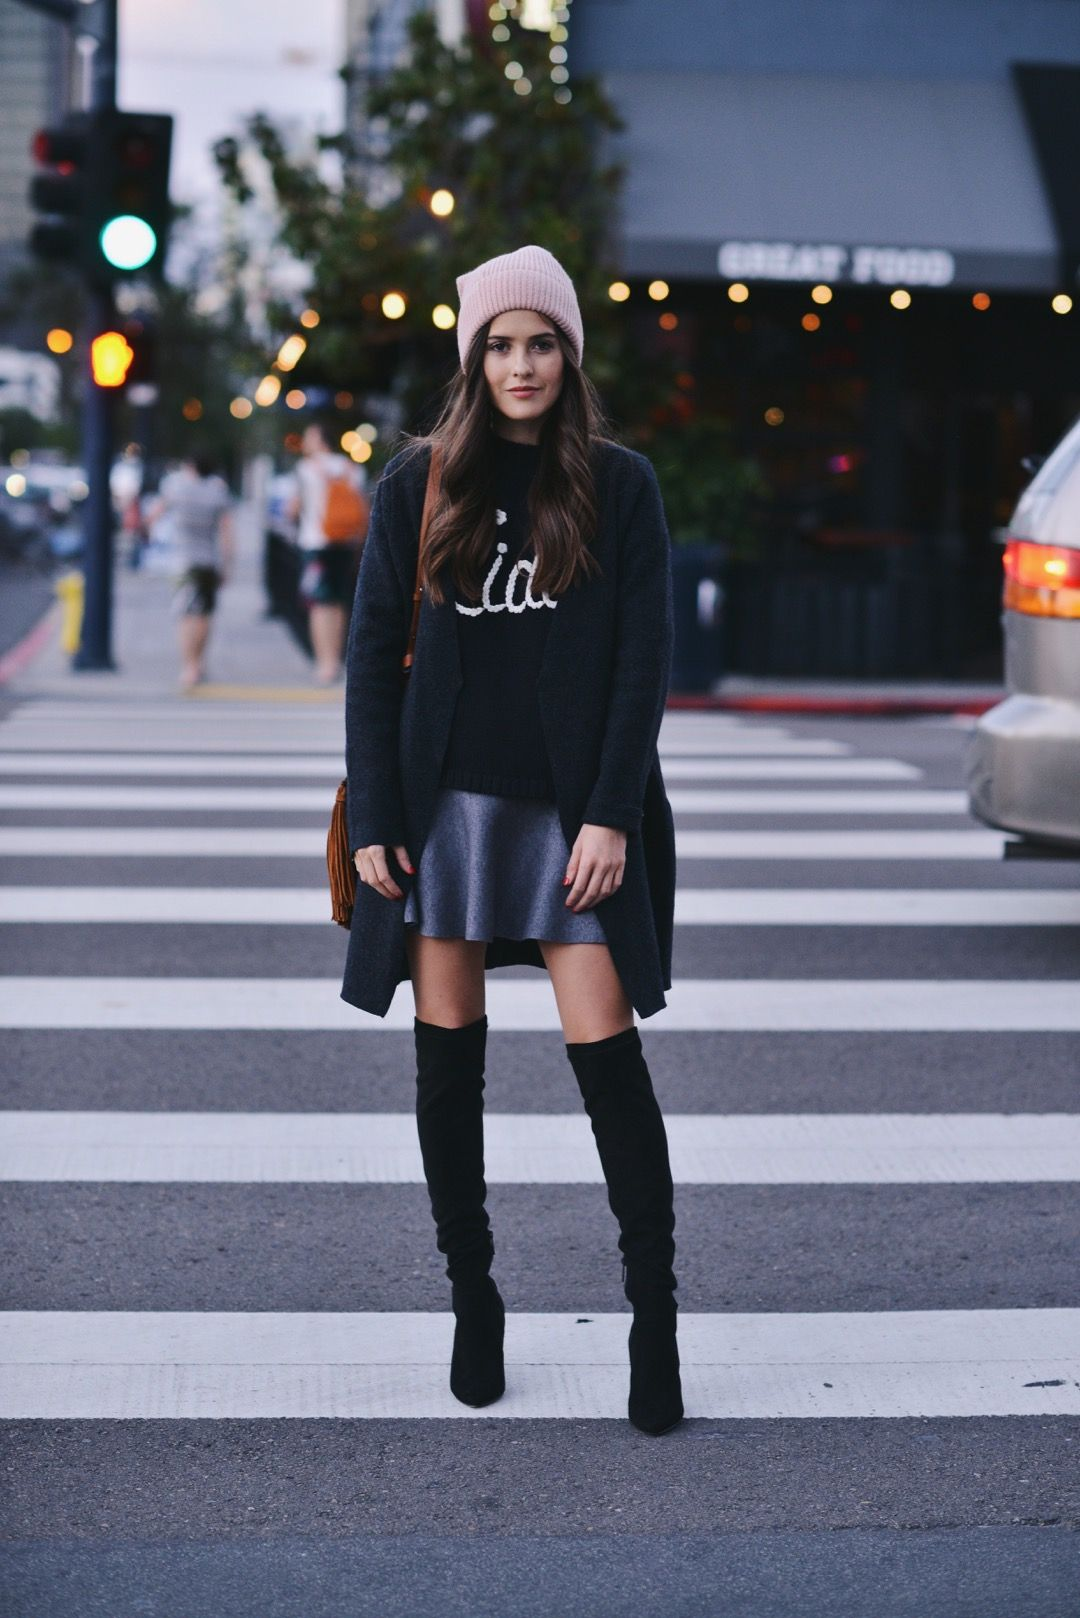 We+love+this+stylish+winter+jumper+and+A+line+skirt+combination.+Over+the+knee+boots+make+the+perfect+finish+to+this+casual+look.+Via+Paola+Alberdi.+Sweater:+Ciao+Bella,+Skirt:+Zara,+Boots:Nordstrom,+Coat:+COS.